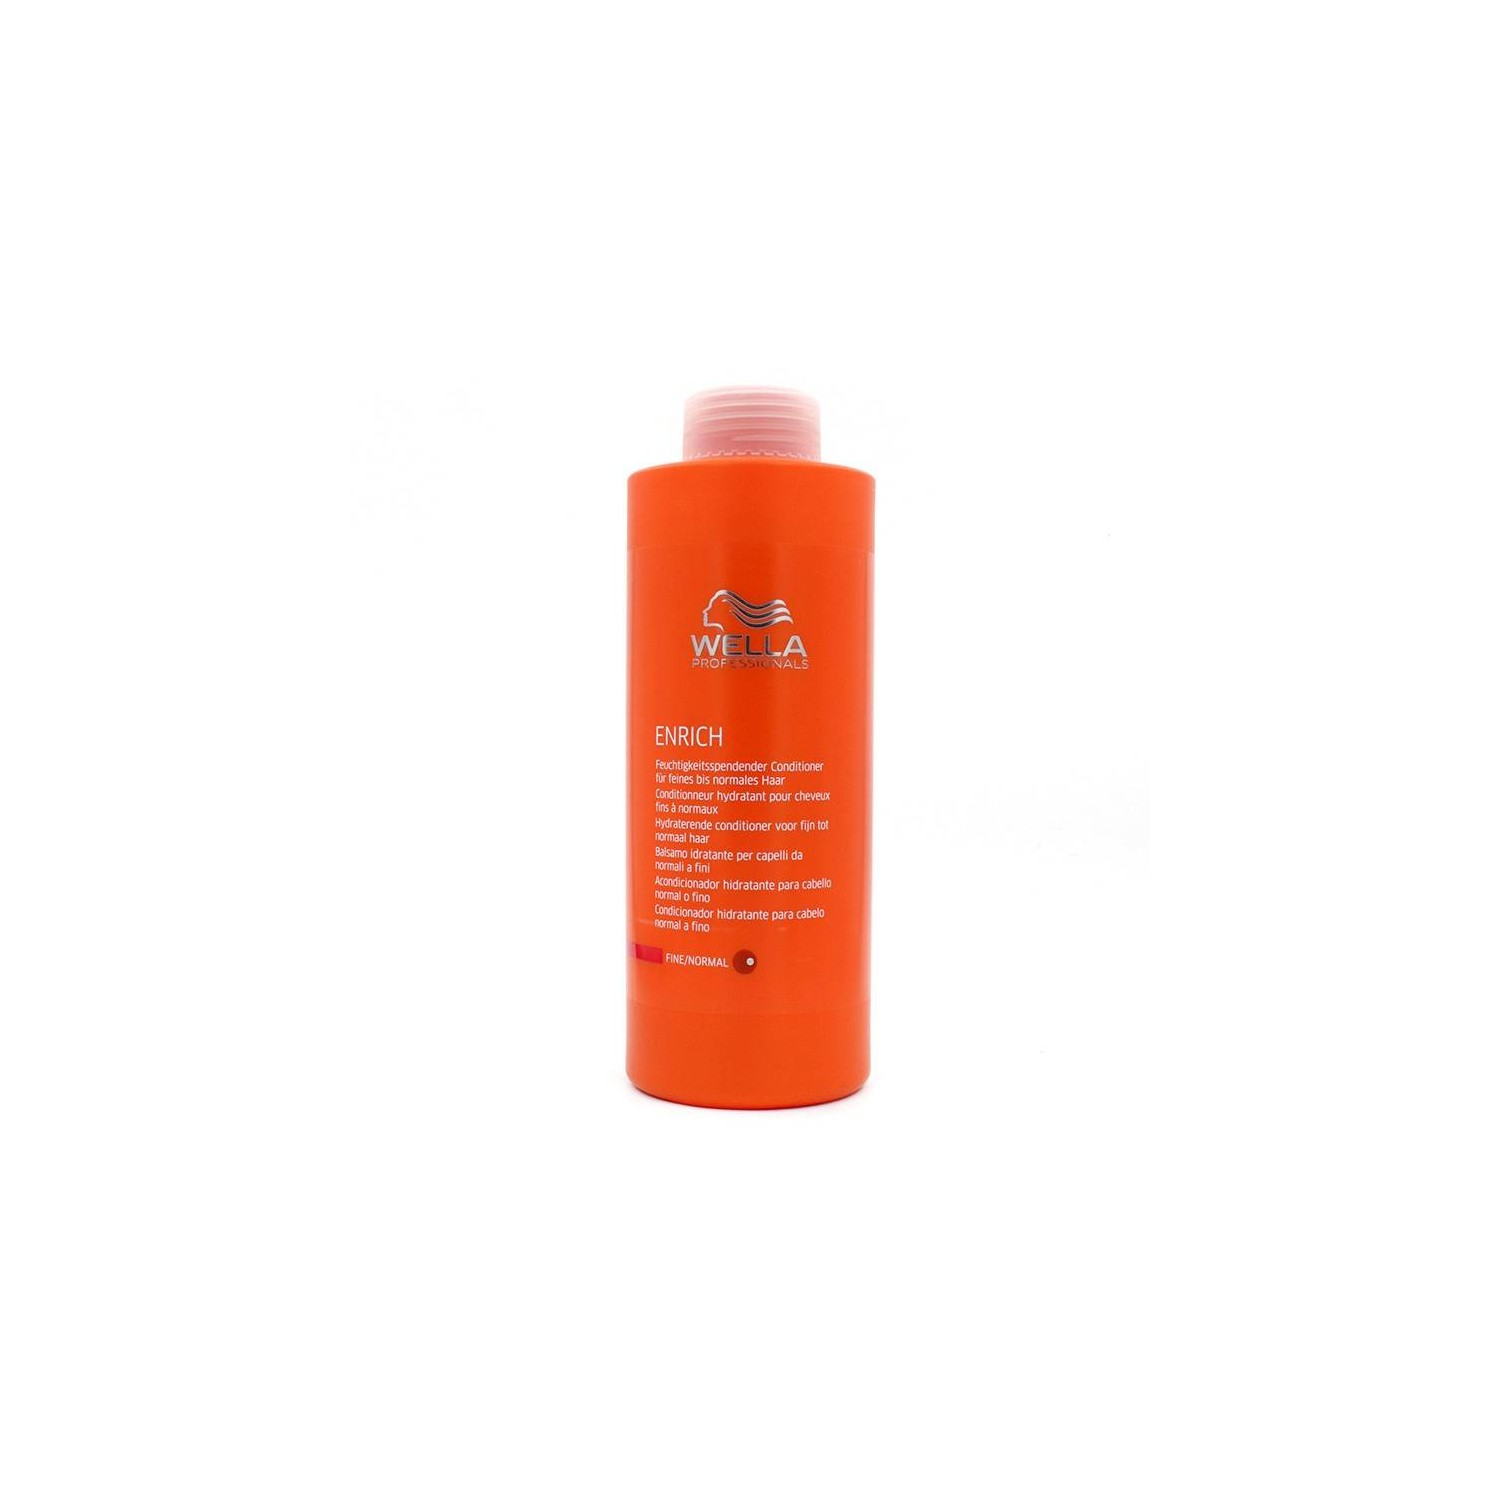 Wella Enrich Acondicionador Cabello Fino/normal 1000 Ml